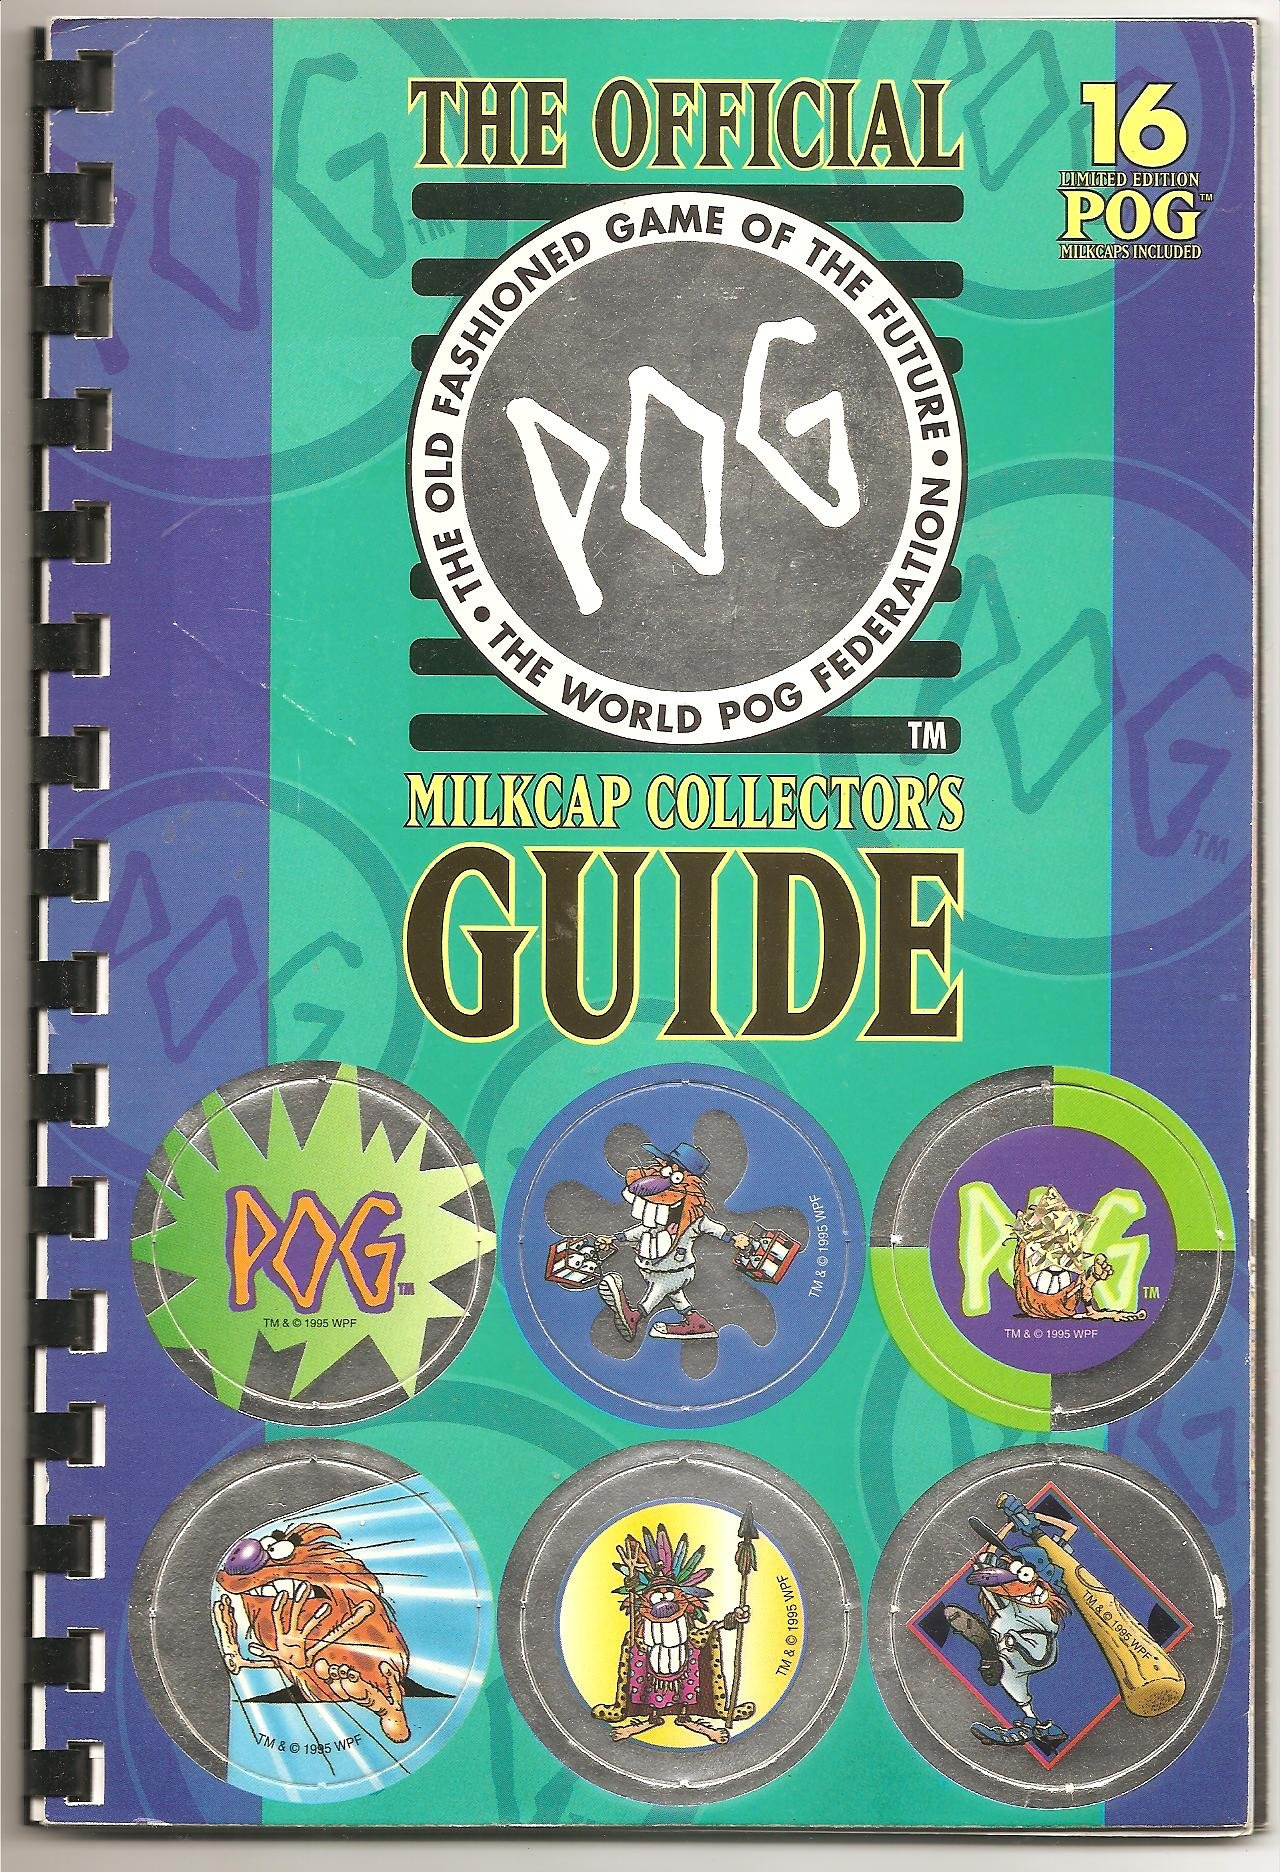 The Official Pog Milkcap Collector's Guide: Amazon co uk: Shane